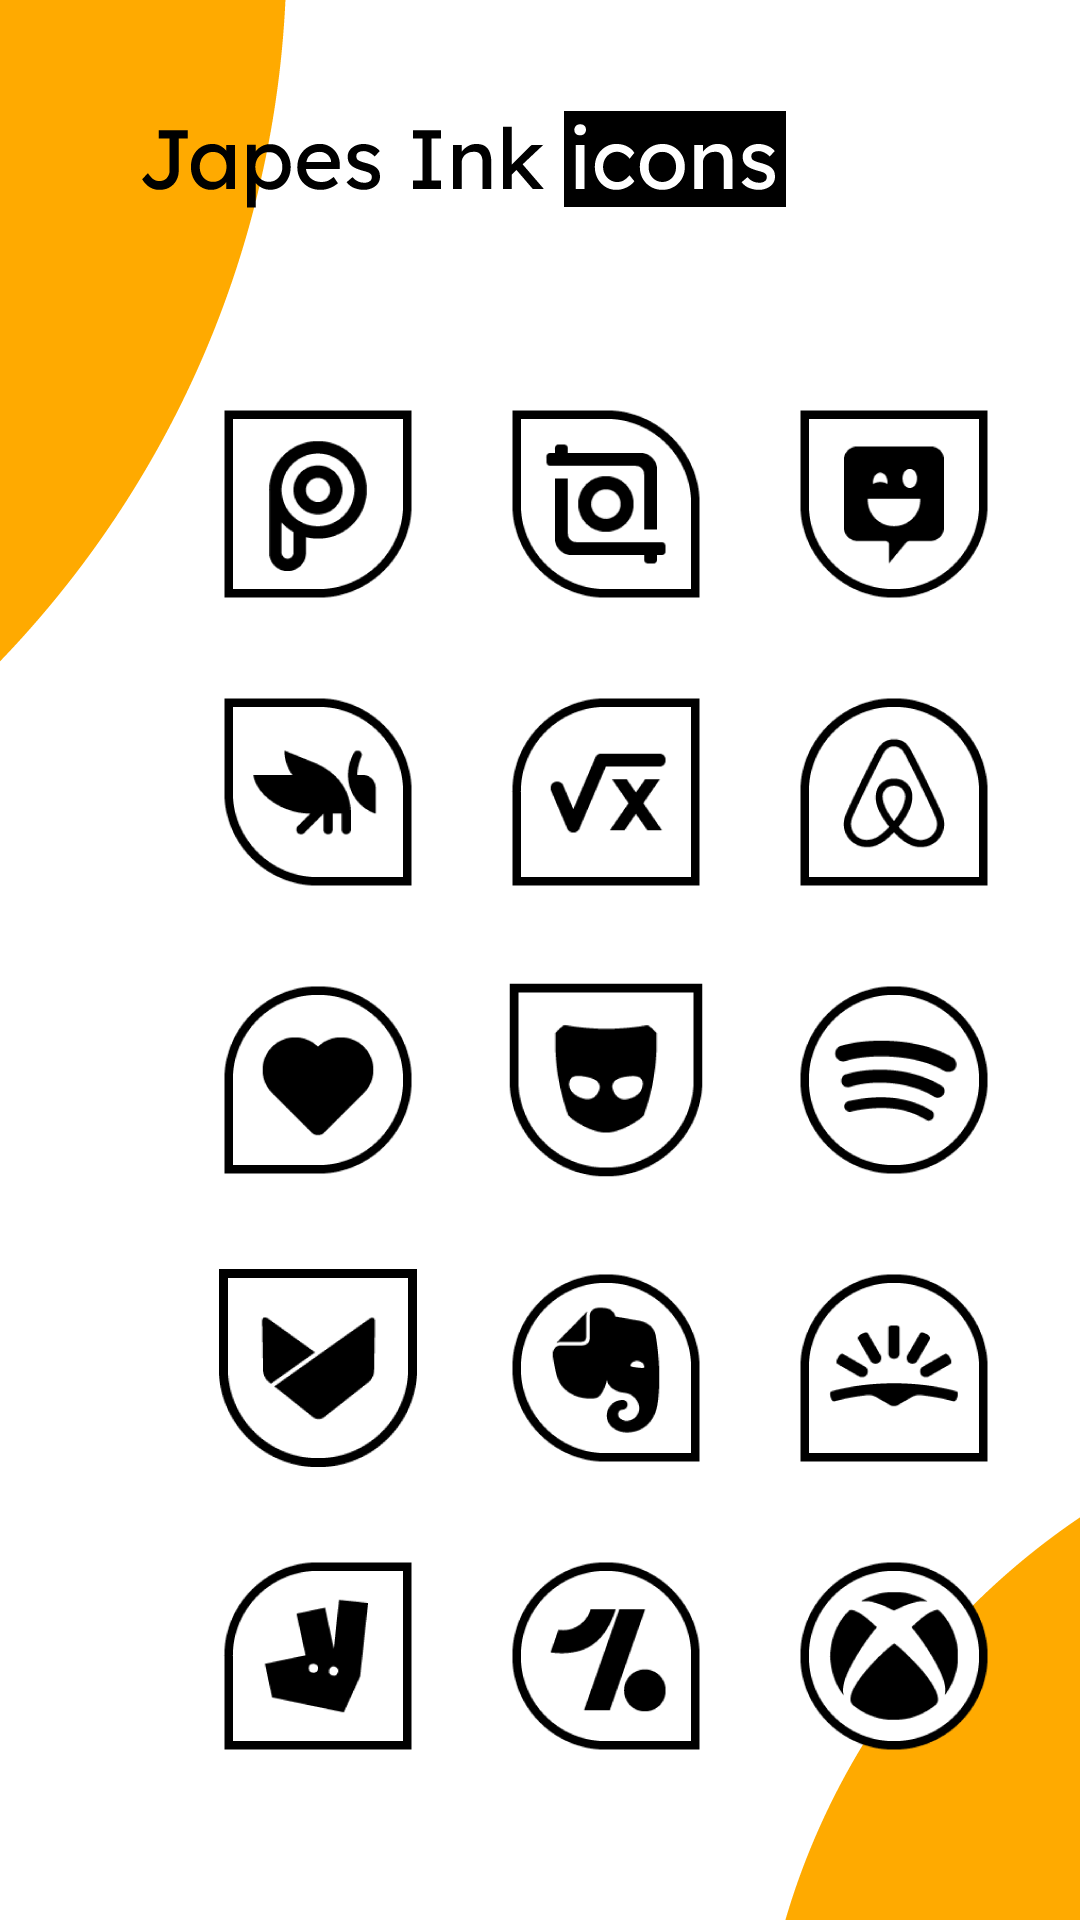 Japes Ink - Black & white HD icon pack